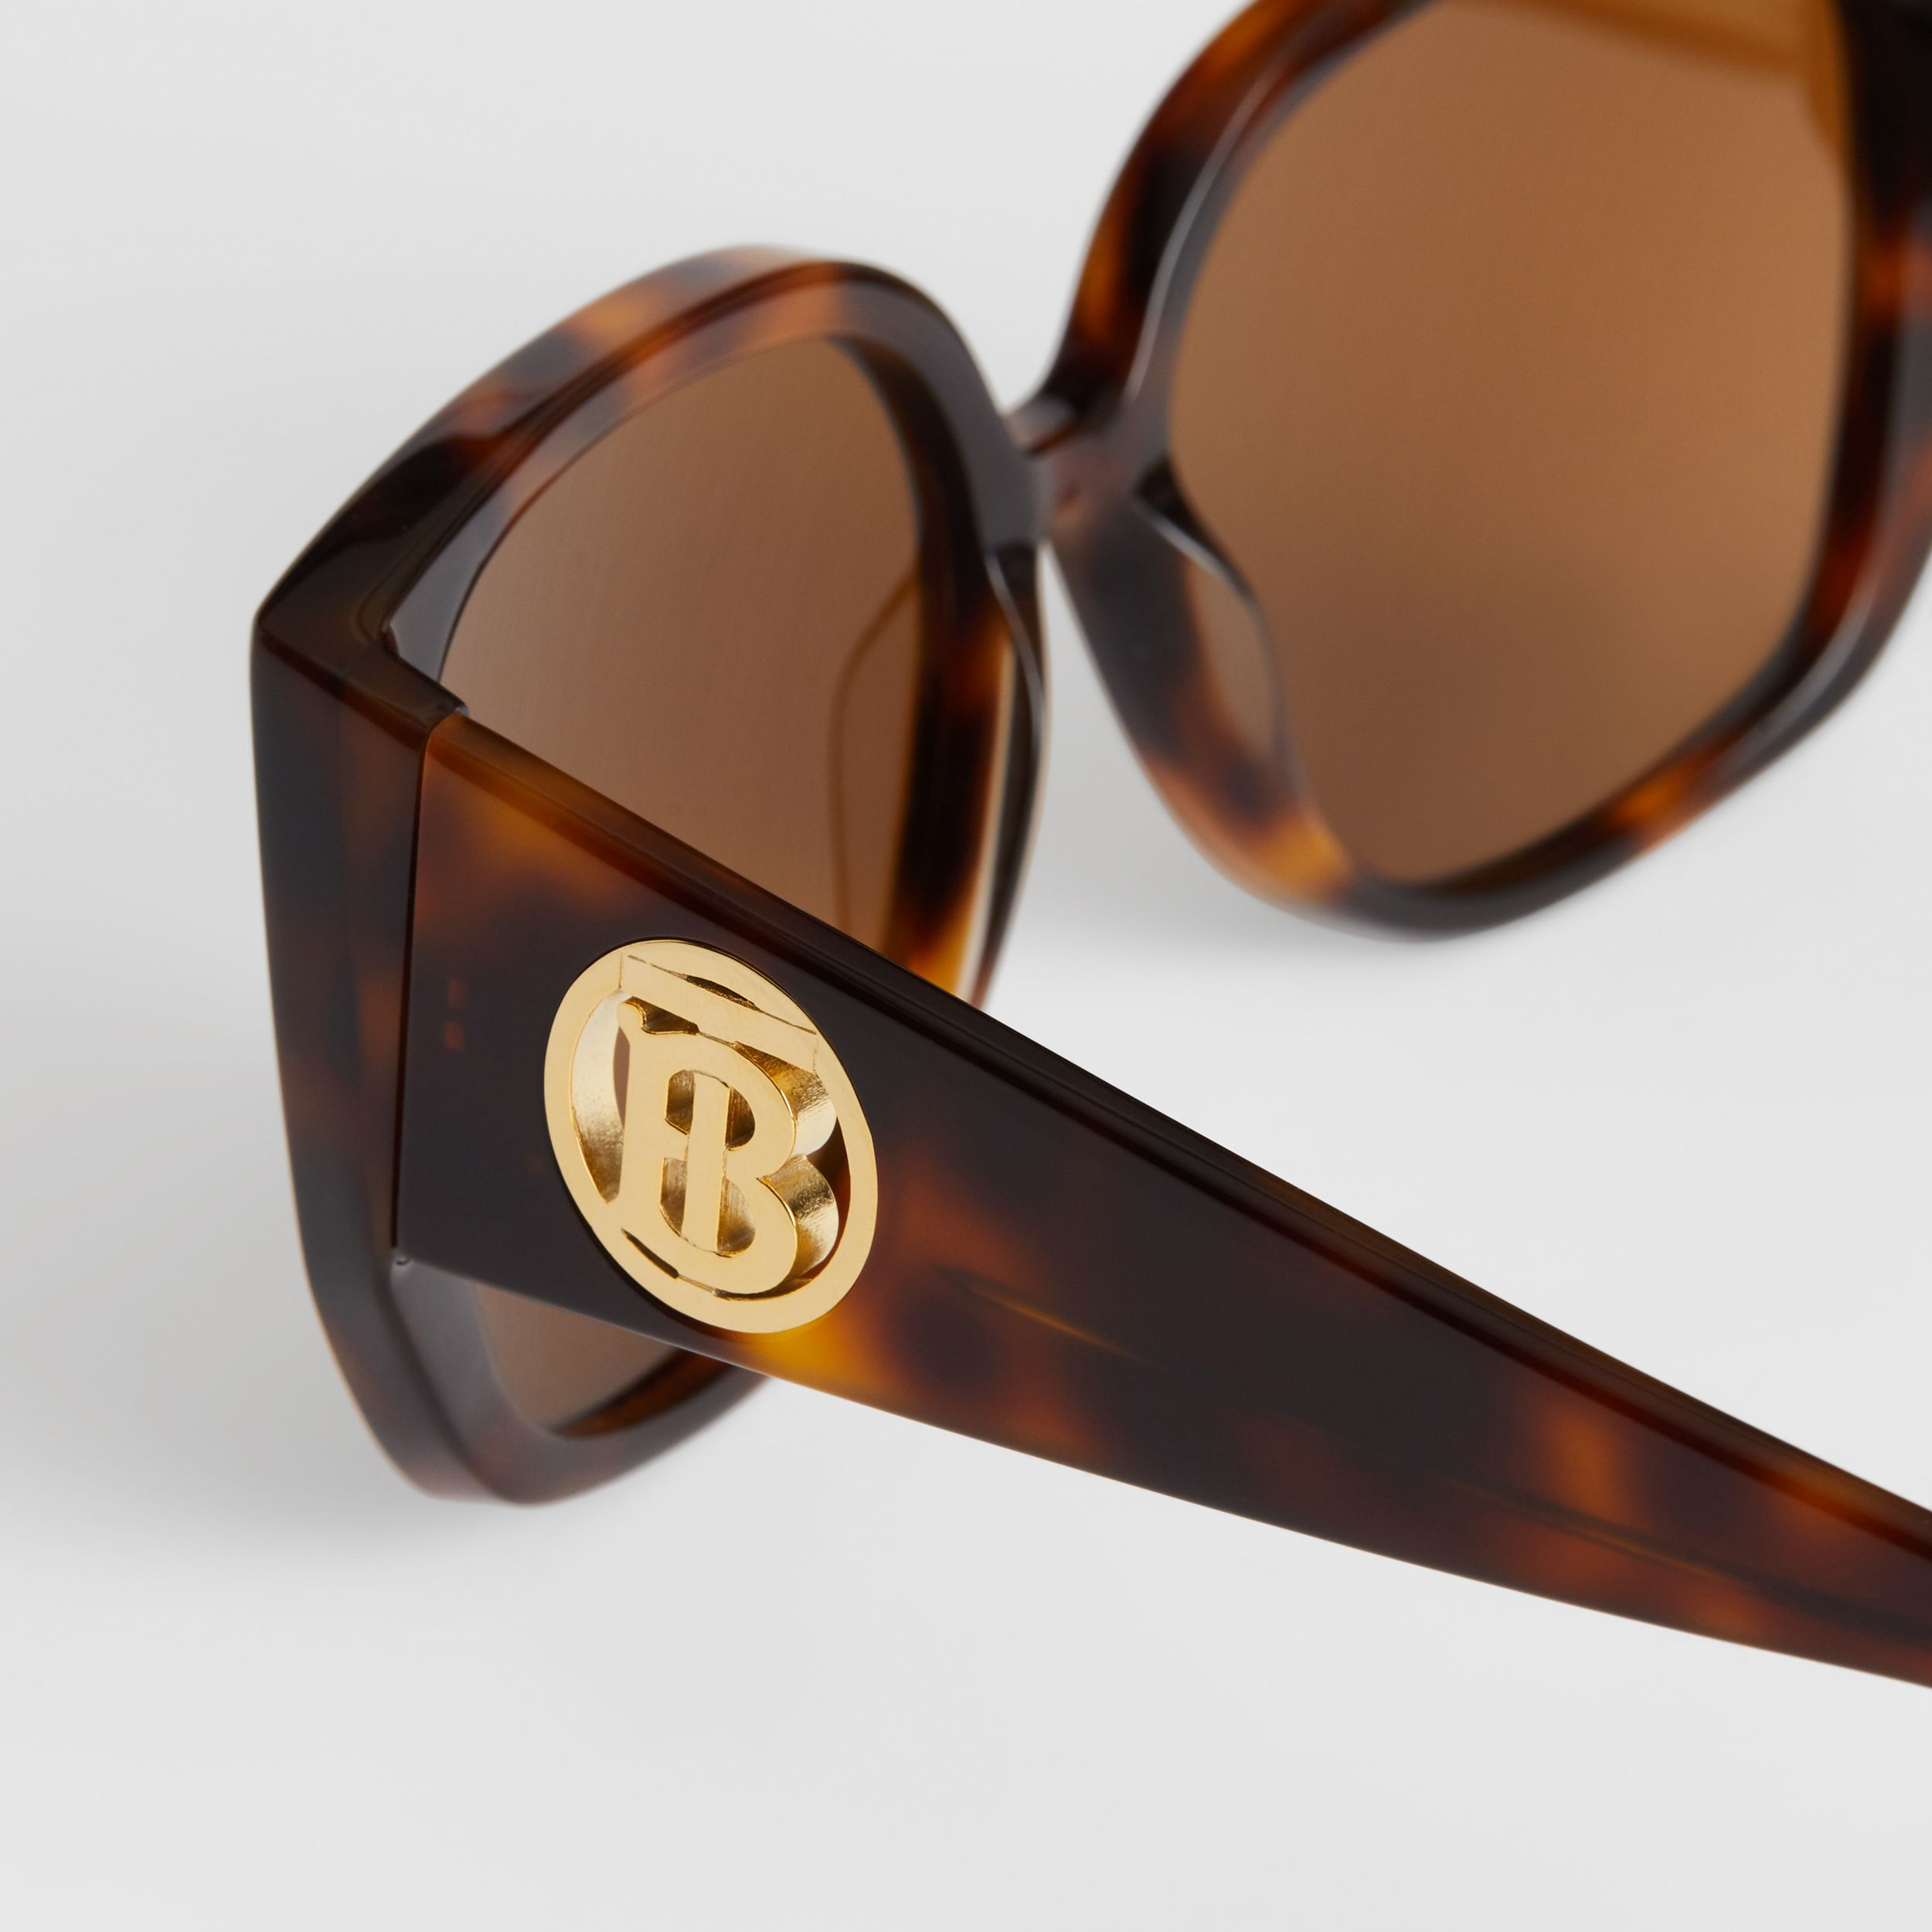 Oversized Butterfly Frame Sunglasses in Tortoiseshell - Women | Burberry - 2